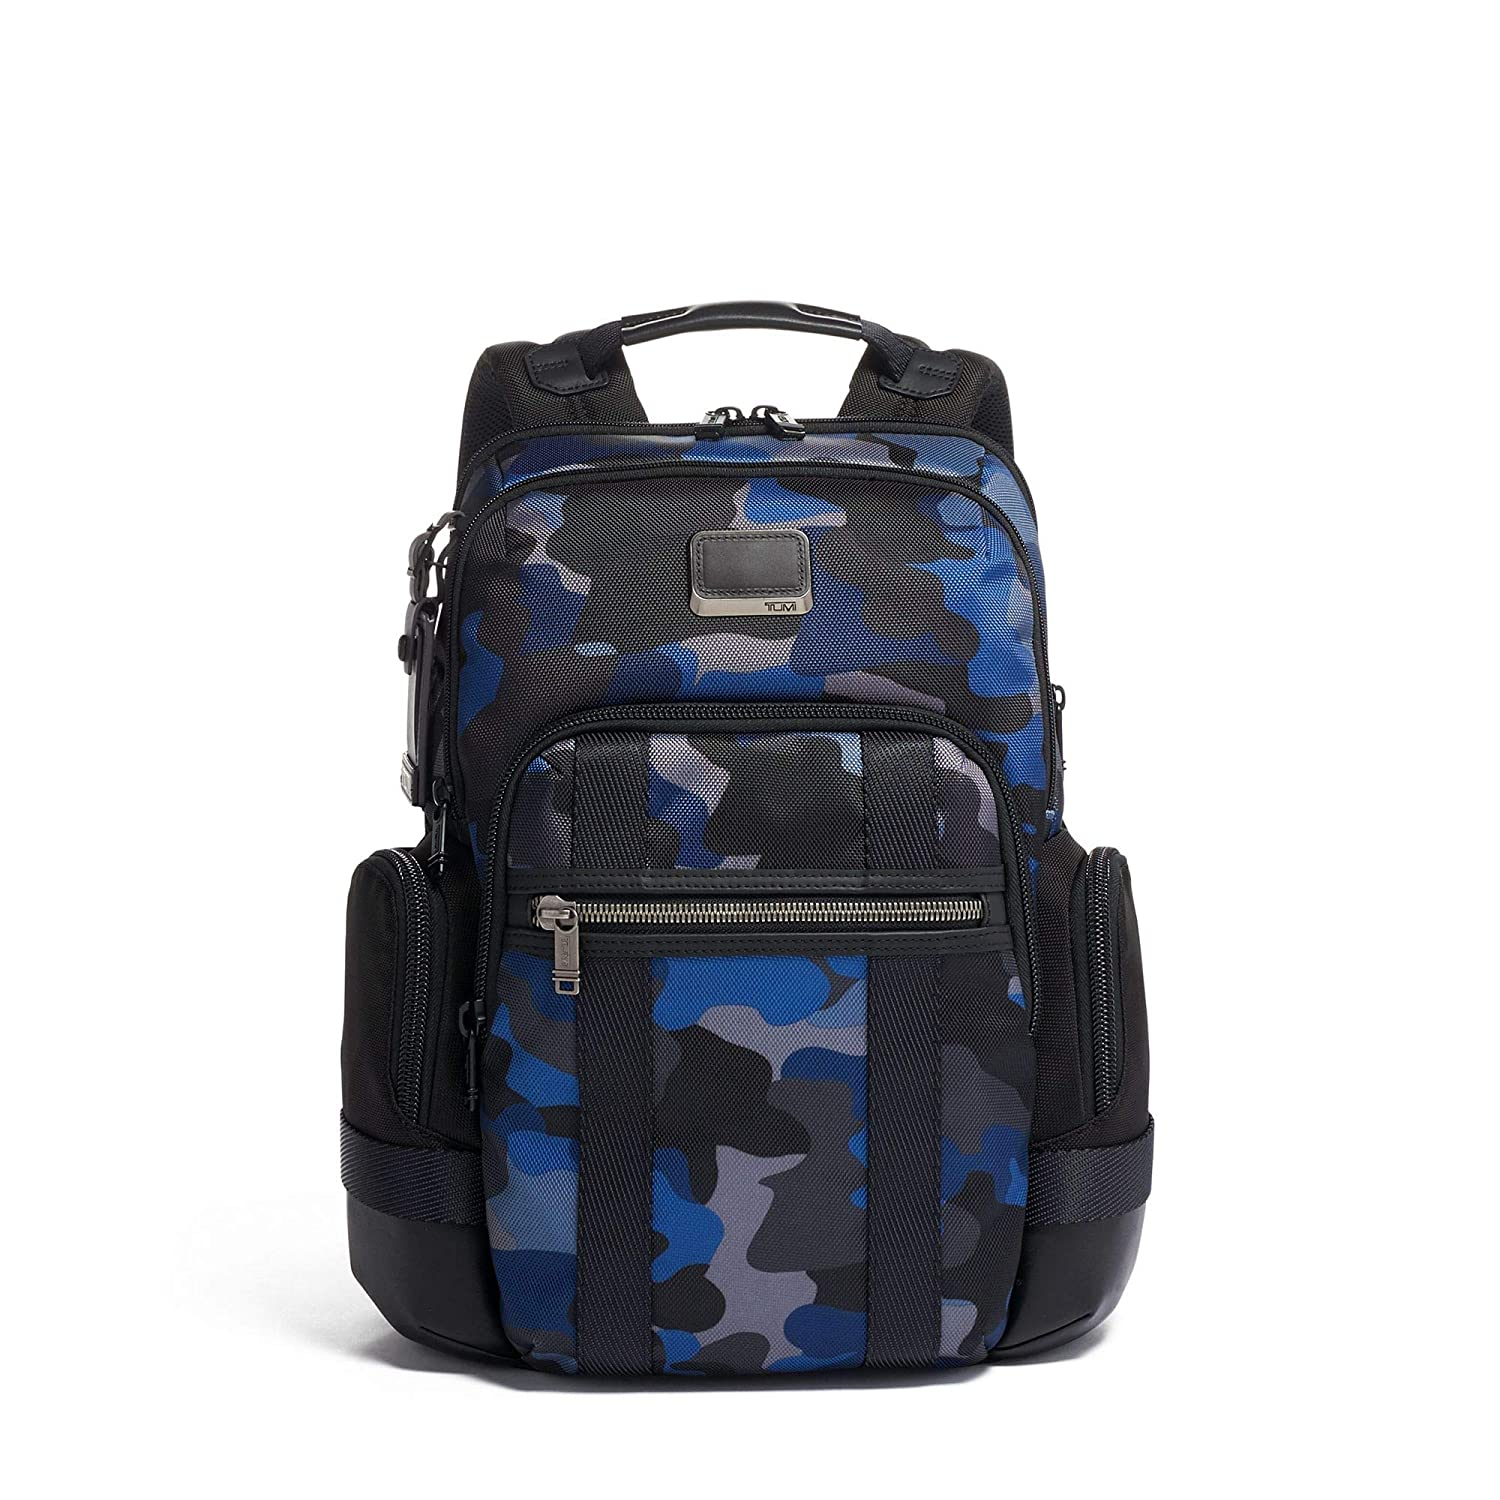 TUMI – Alpha Bravo Nathan Laptop Backpack – 15 Inch Computer Bag for Men and Women – Camo